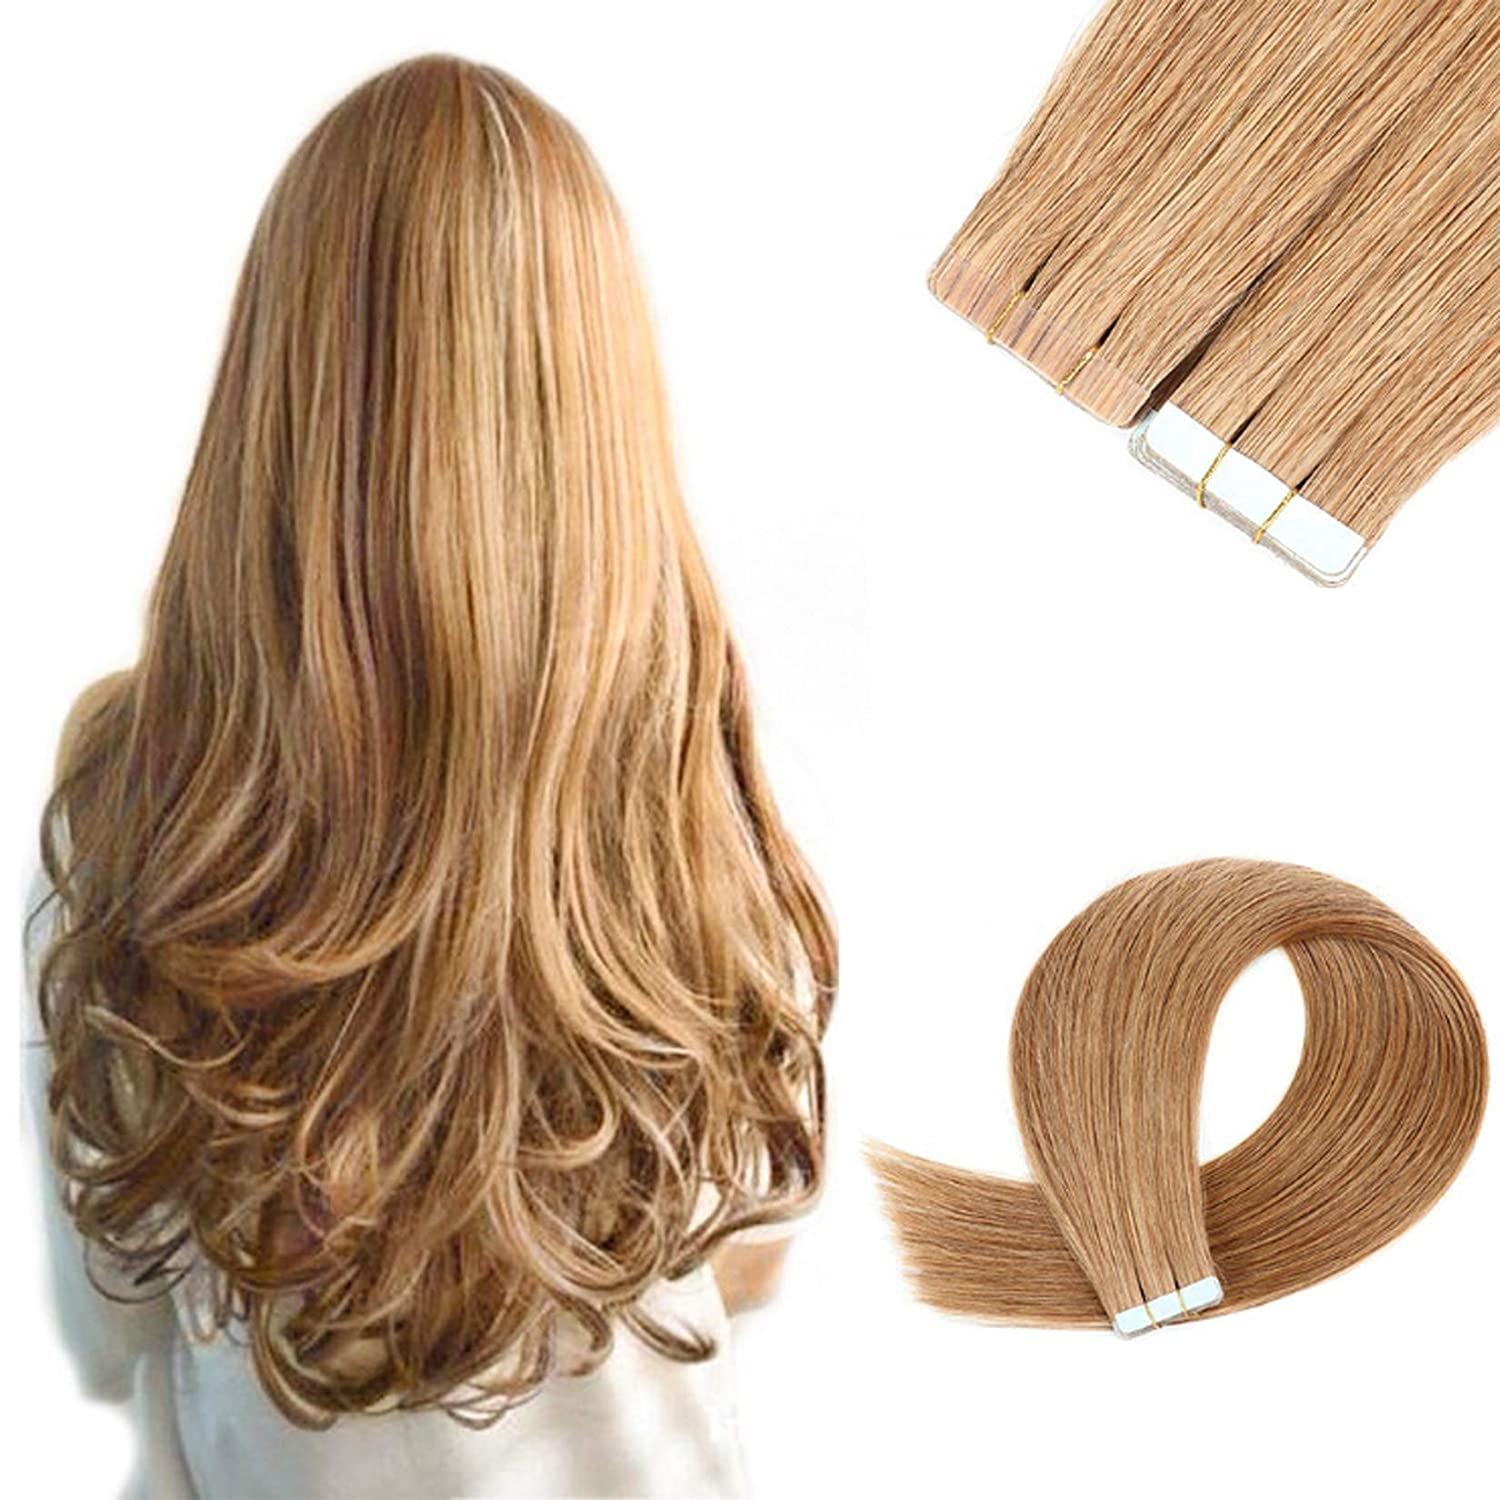 Tape in Hair Extensions #27 Remy Human 100% Award-winning store Many popular brands Blonde Caramel